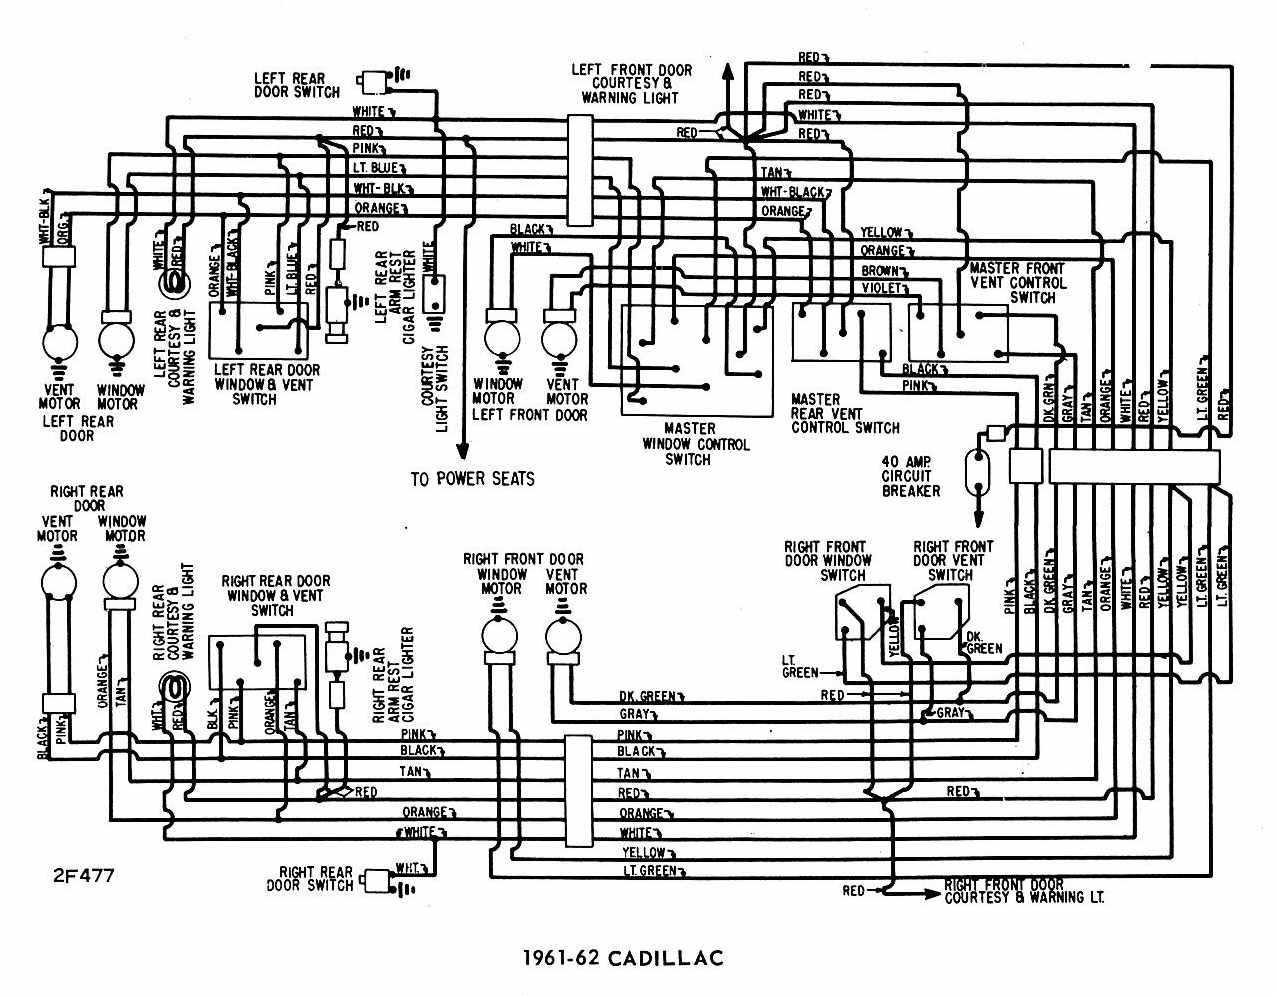 2005 Cadillac Sts Wiring Diagram And Ebooks Radio Amp 2003 Cts Engine Library Rh 89 Fulldiabetescare Org Stereo